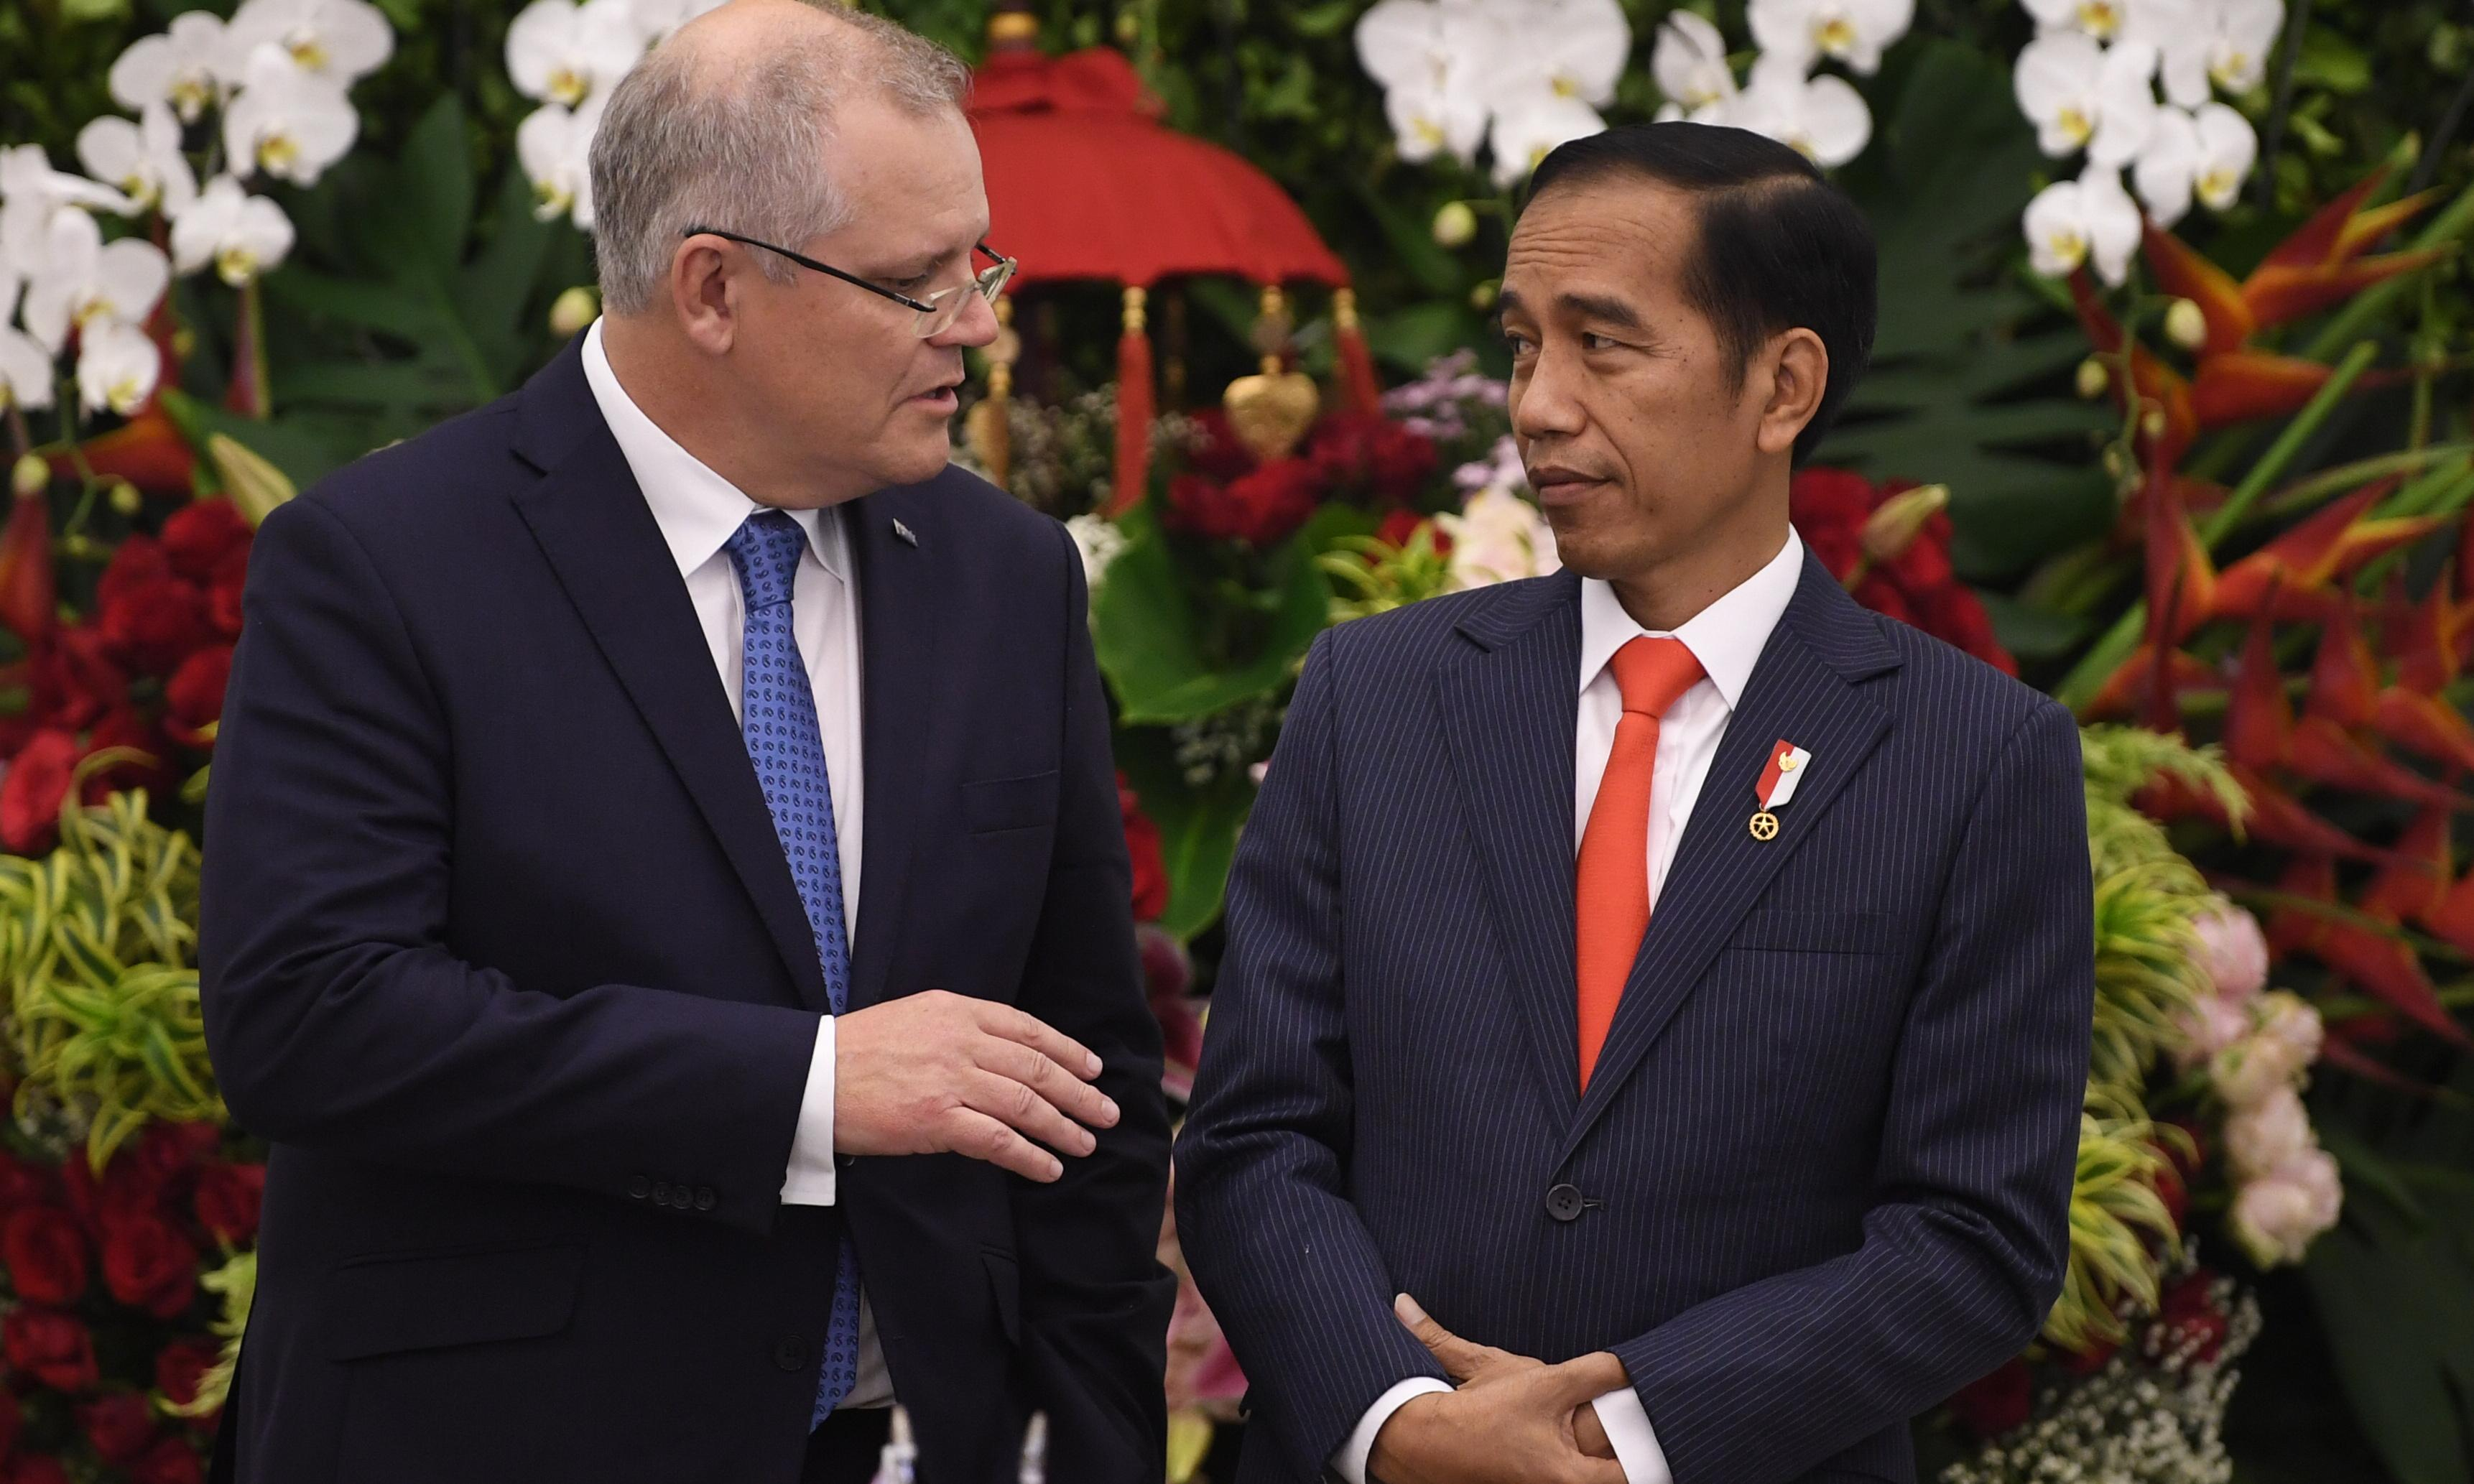 Scott Morrison travels to Indonesia as Labor embraces free trade agreement